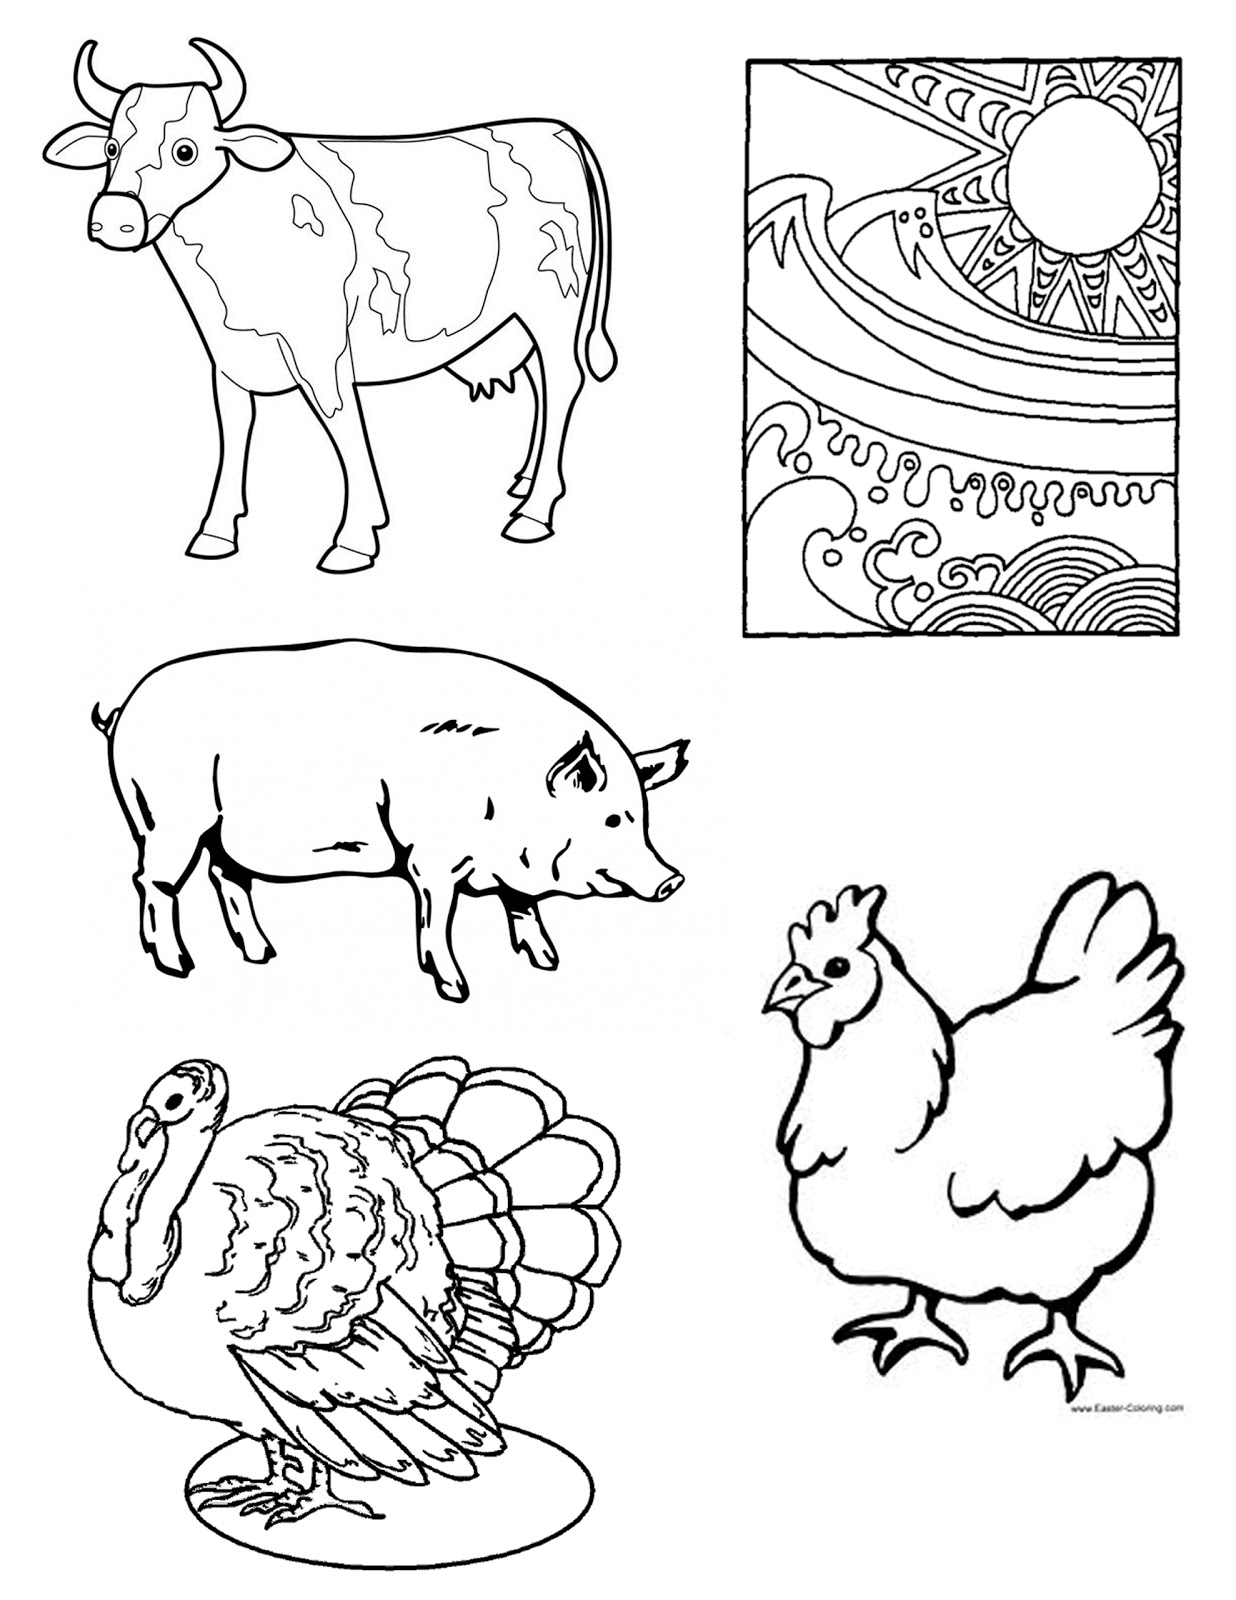 Protein Coloring Pages Pictures To Pin